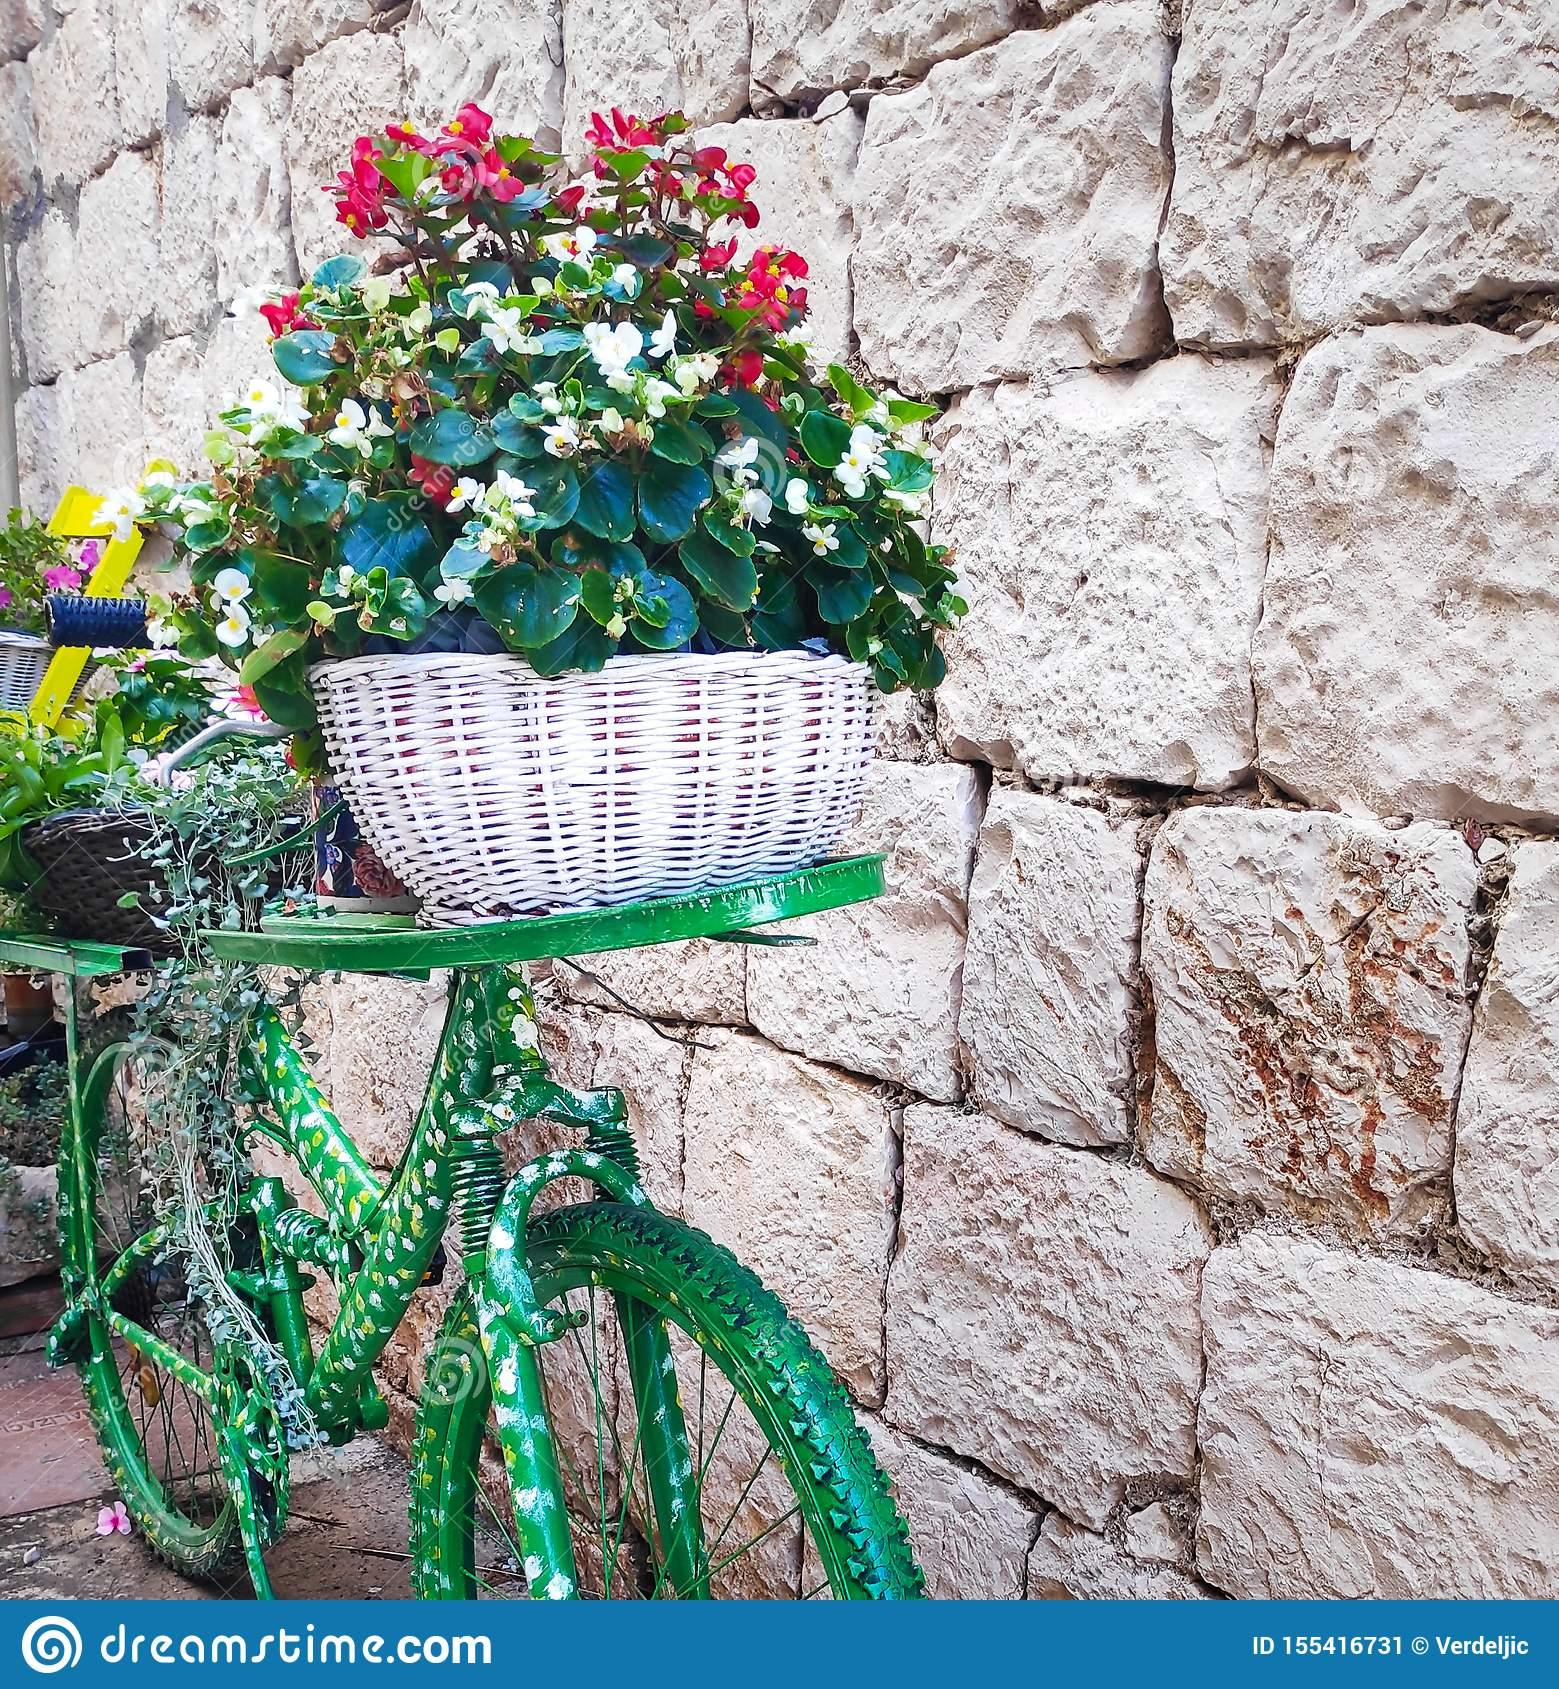 Green Bicycle With A Flower Basket Autumn Or Summer Decor Stock Image Image Of Decor Rustic 155416731